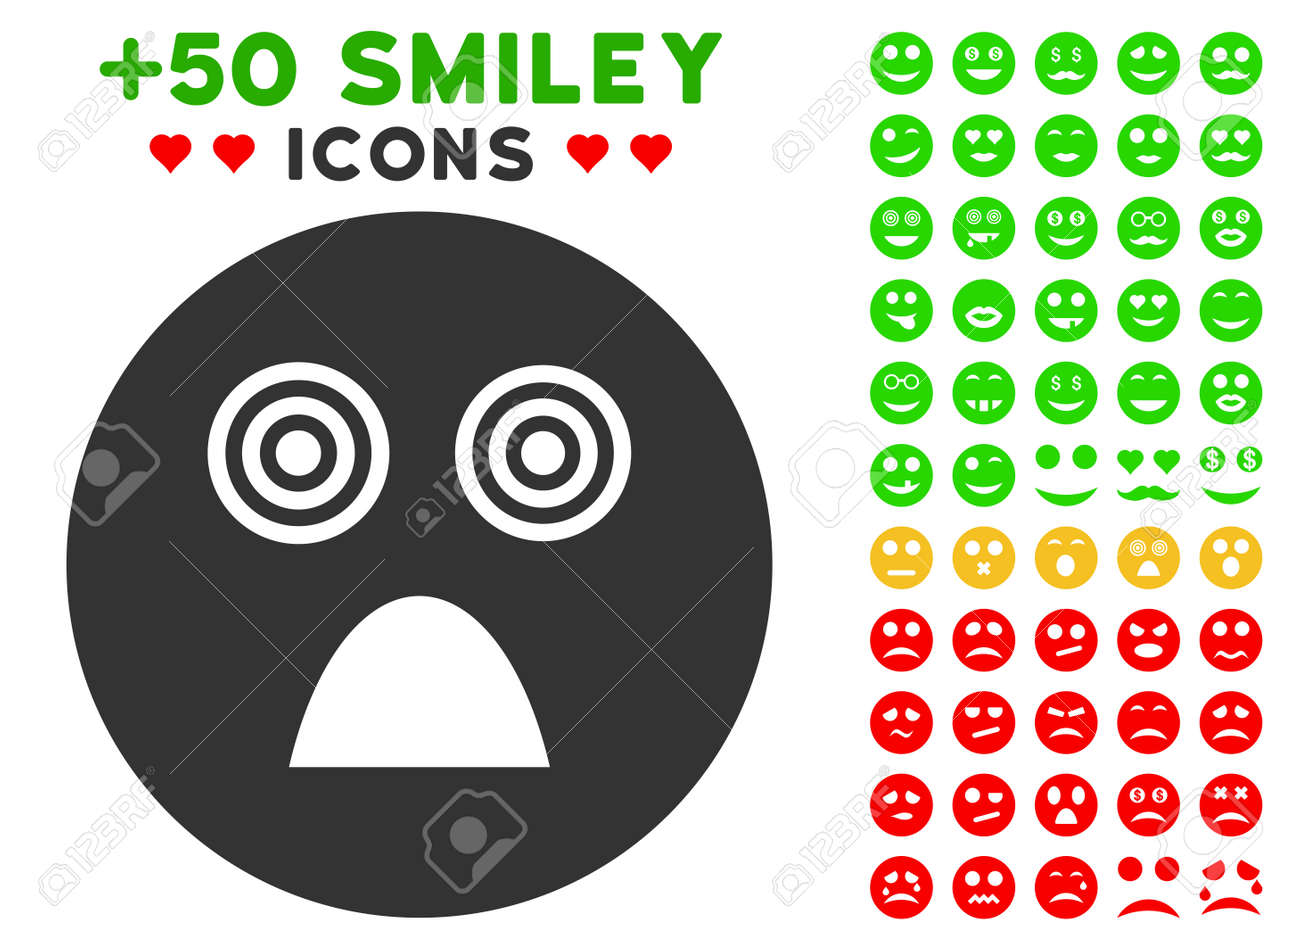 Crazy Smiley Icon With Colored Bonus Avatar Symbols Royalty Free